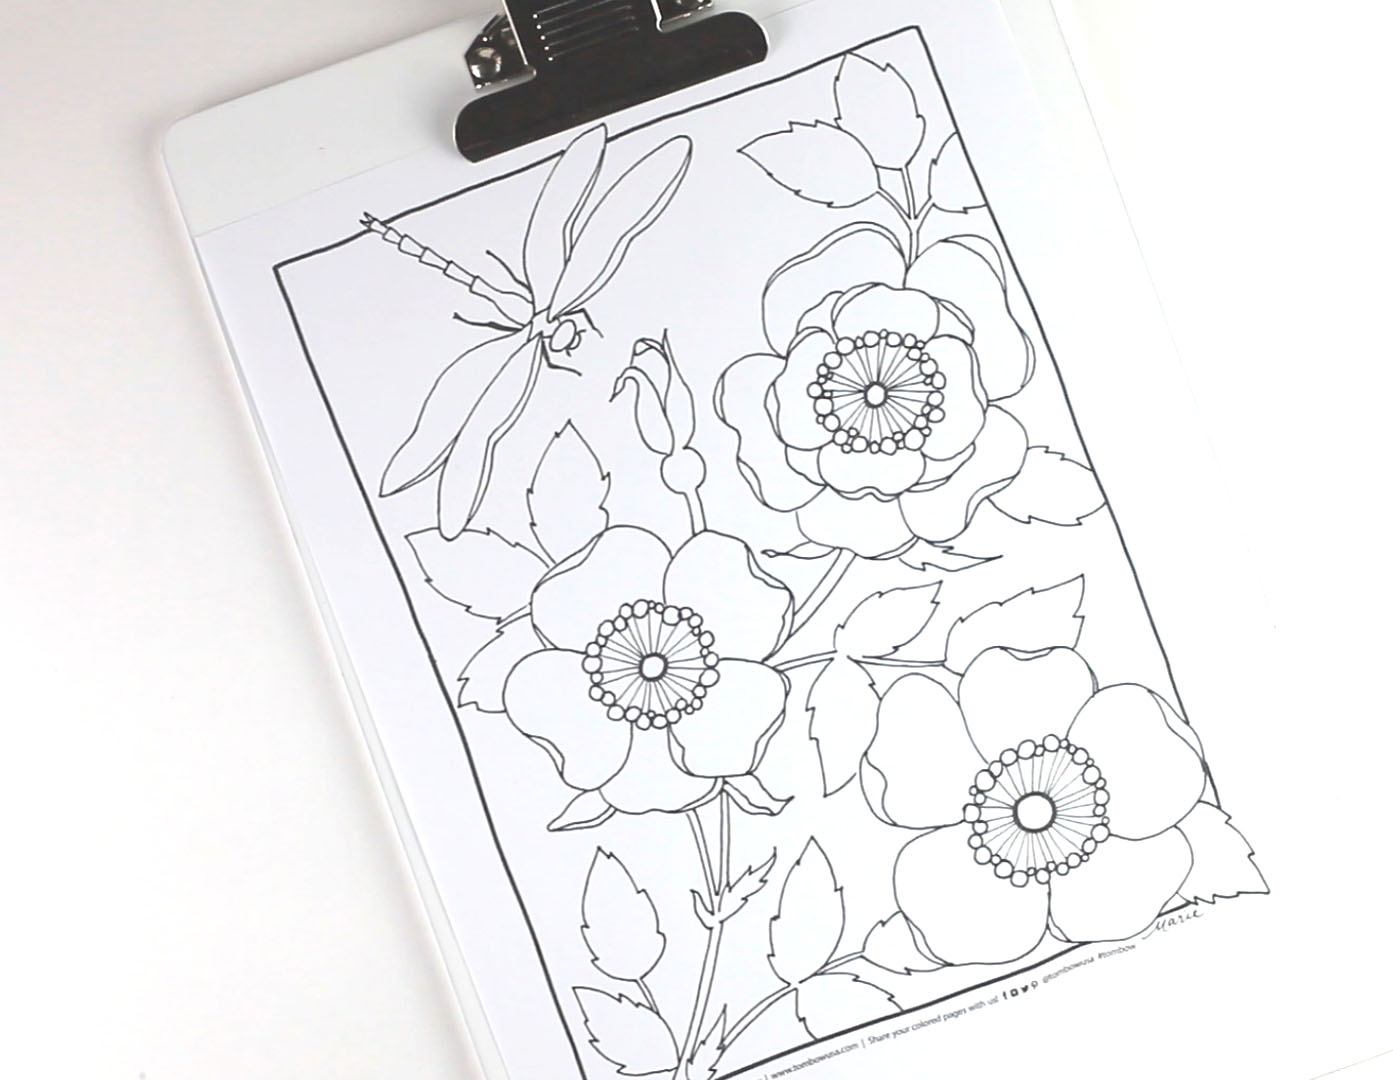 Coloring Pages For Adults That You Can Print : Mixed media coloring using tombow dual brush pens tombow usa